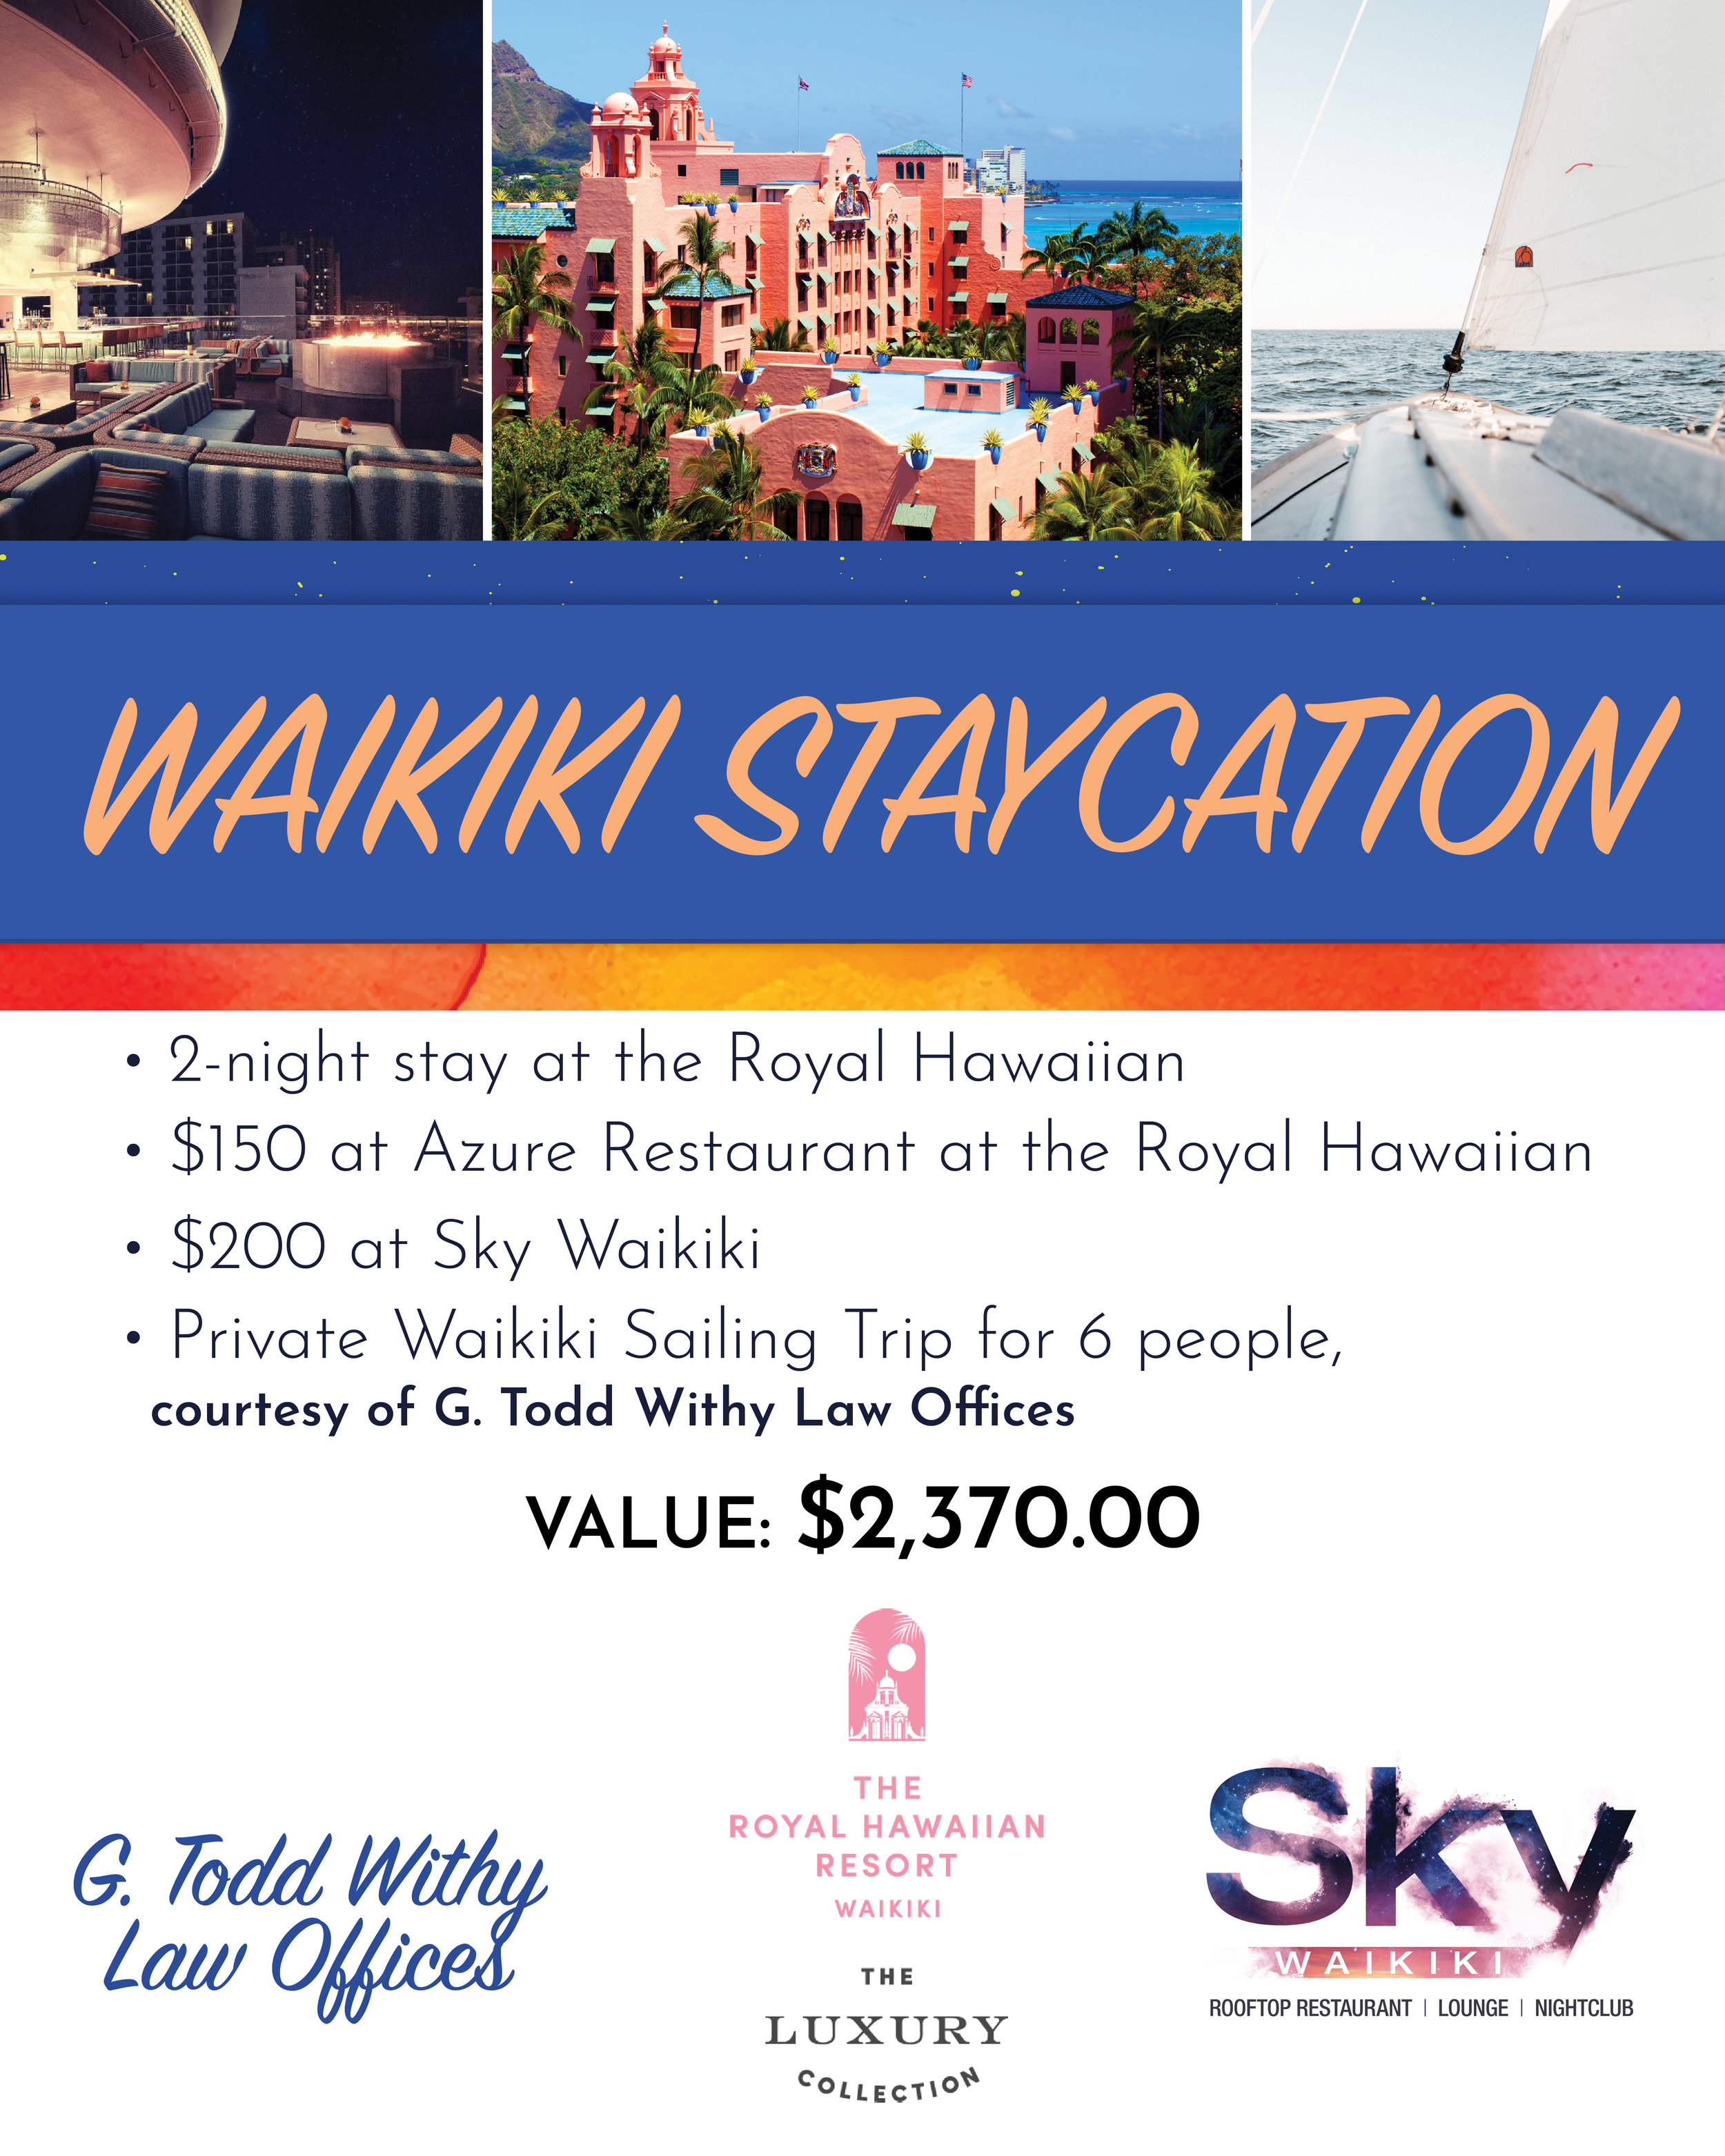 PHBP2019 Prize Drawing0904-WaikikiStaycation.jpg